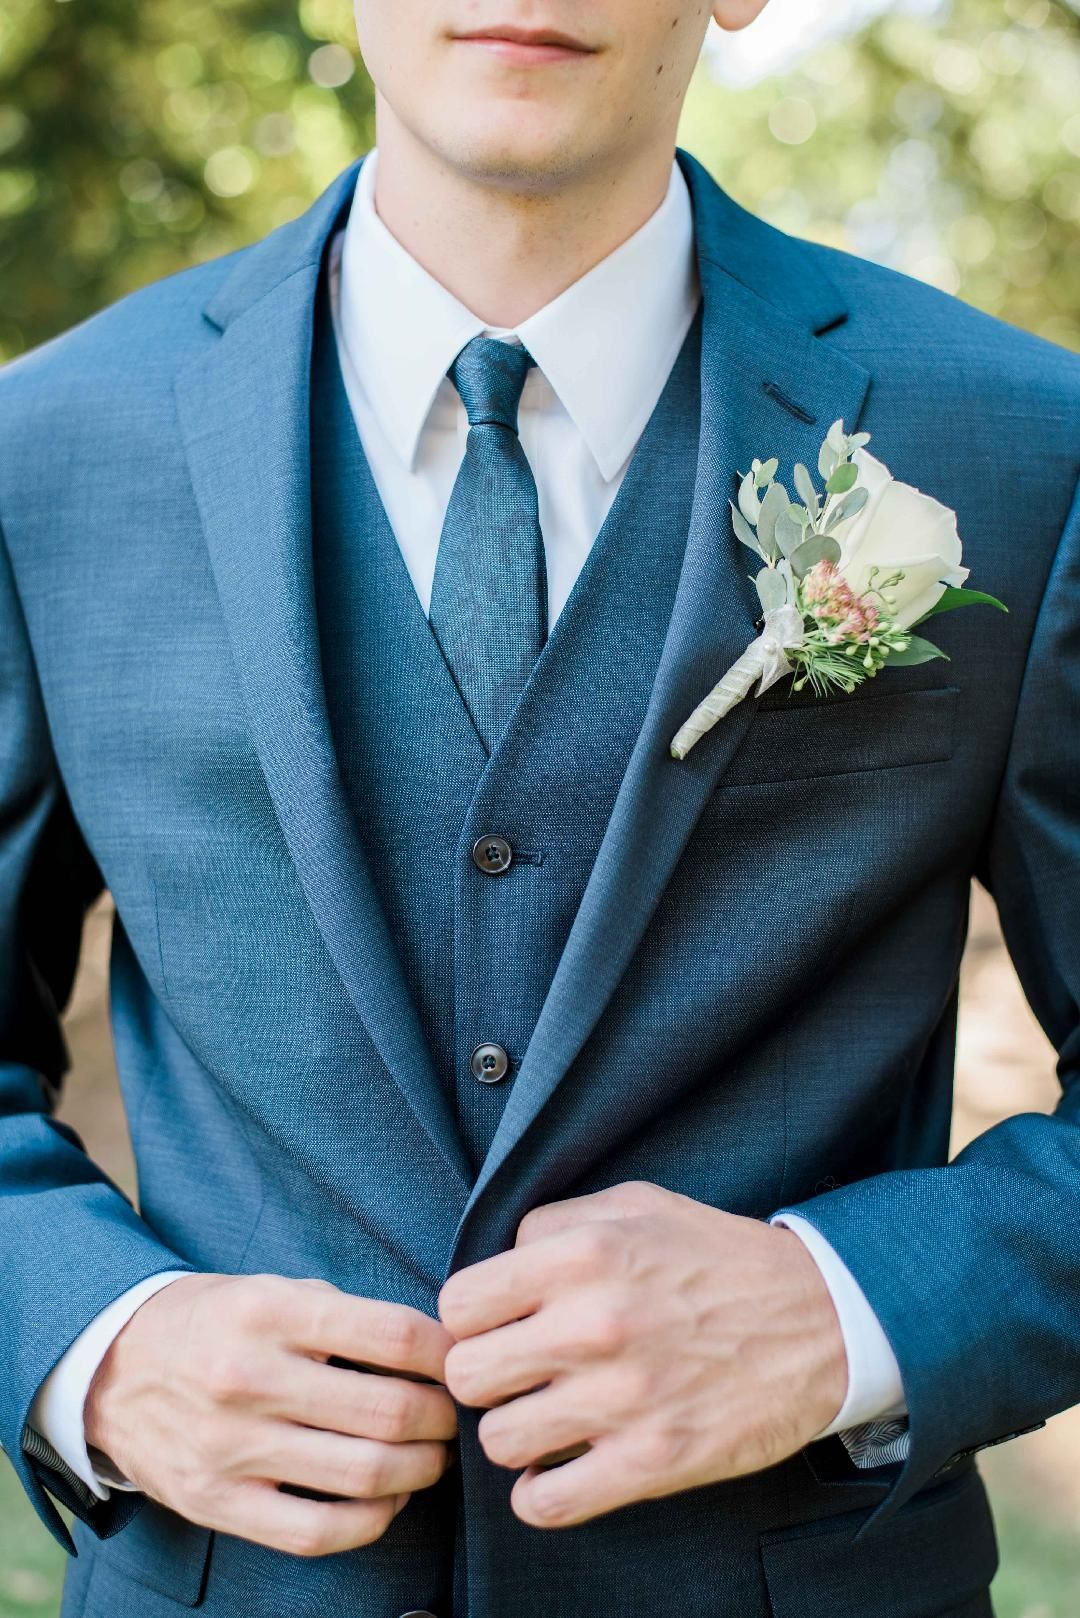 Pin by Hollyfield Design, Inc. on HDI Weddings 2017 | Pinterest ...